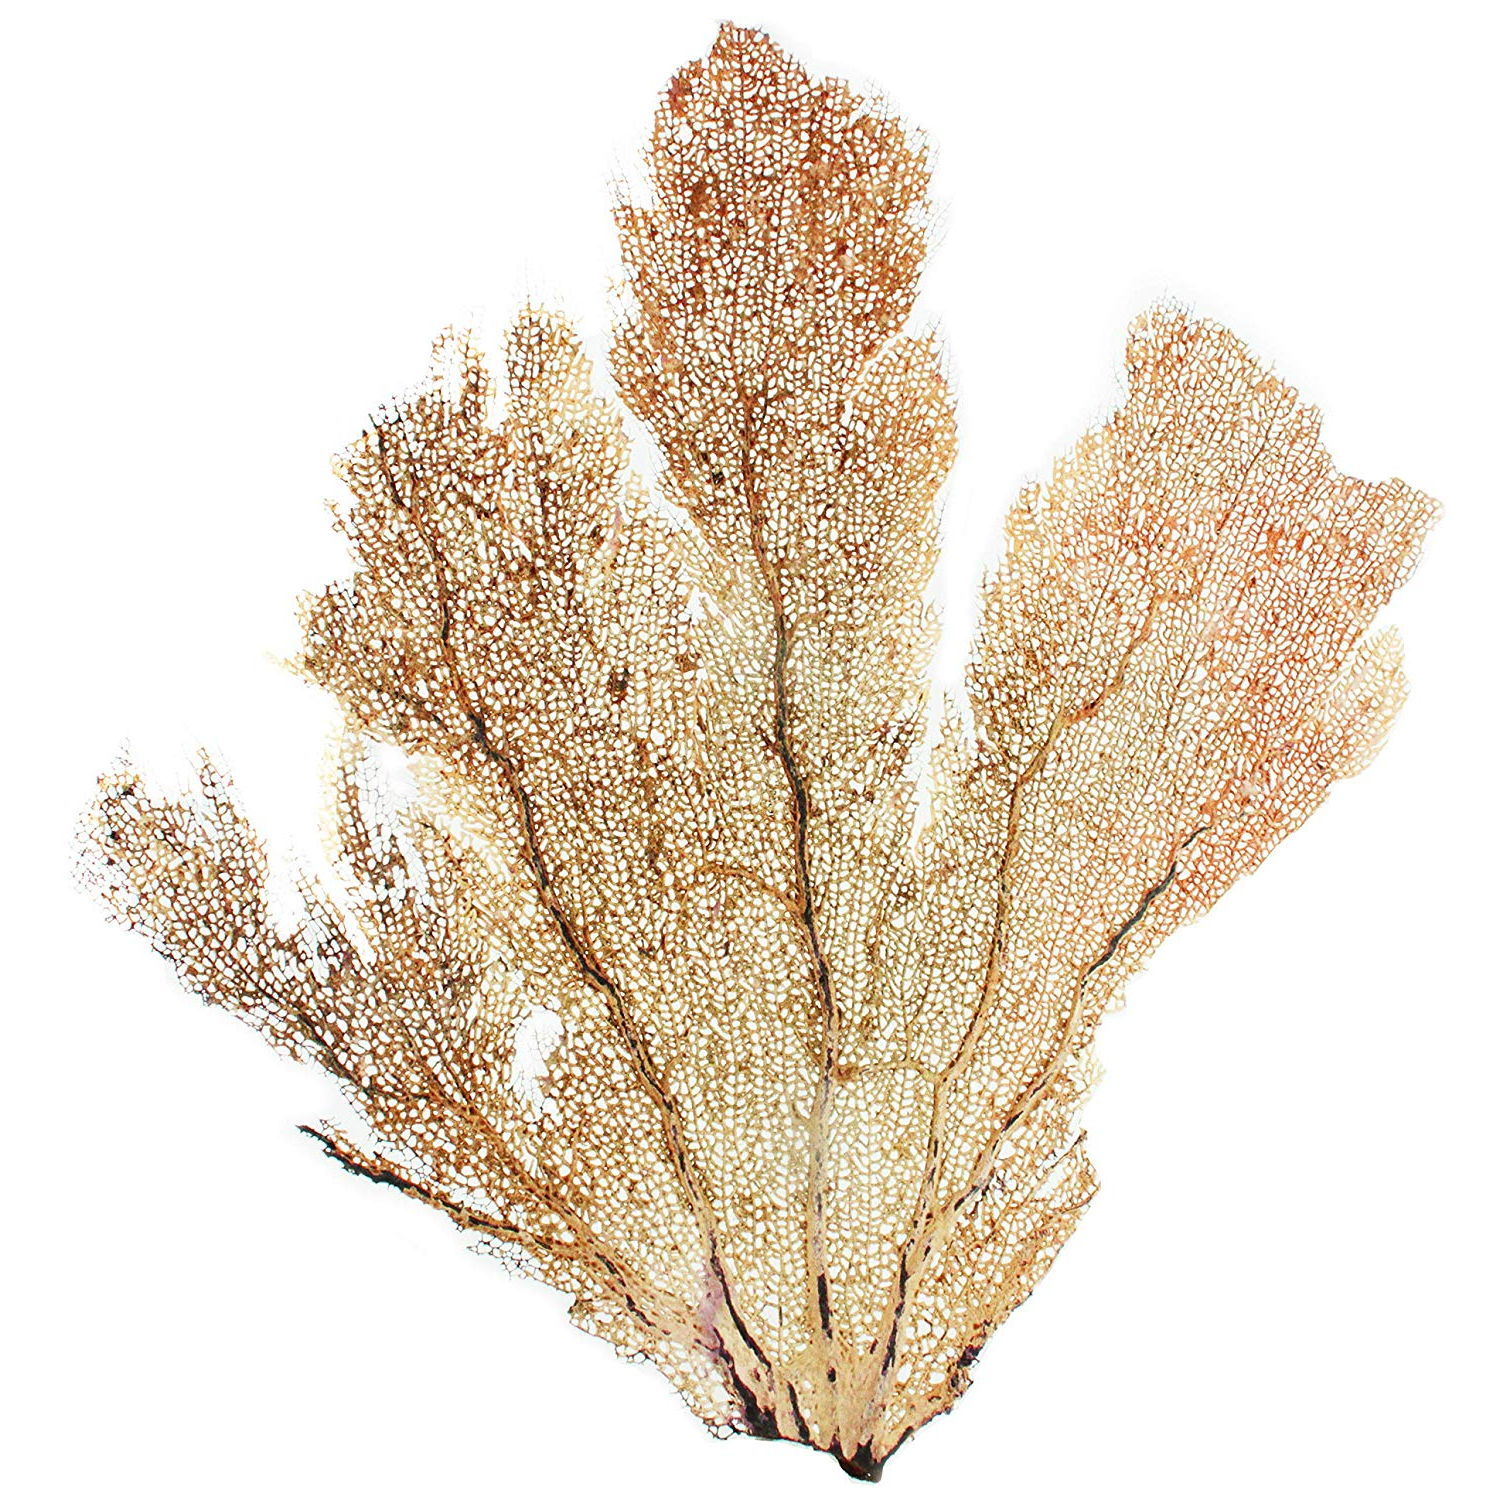 Latest 2 Piece Heart Shaped Fan Wall Decor Sets For Amazon: Slice Of Goodness Natural Decorative Dried Coral Sea (Gallery 5 of 20)